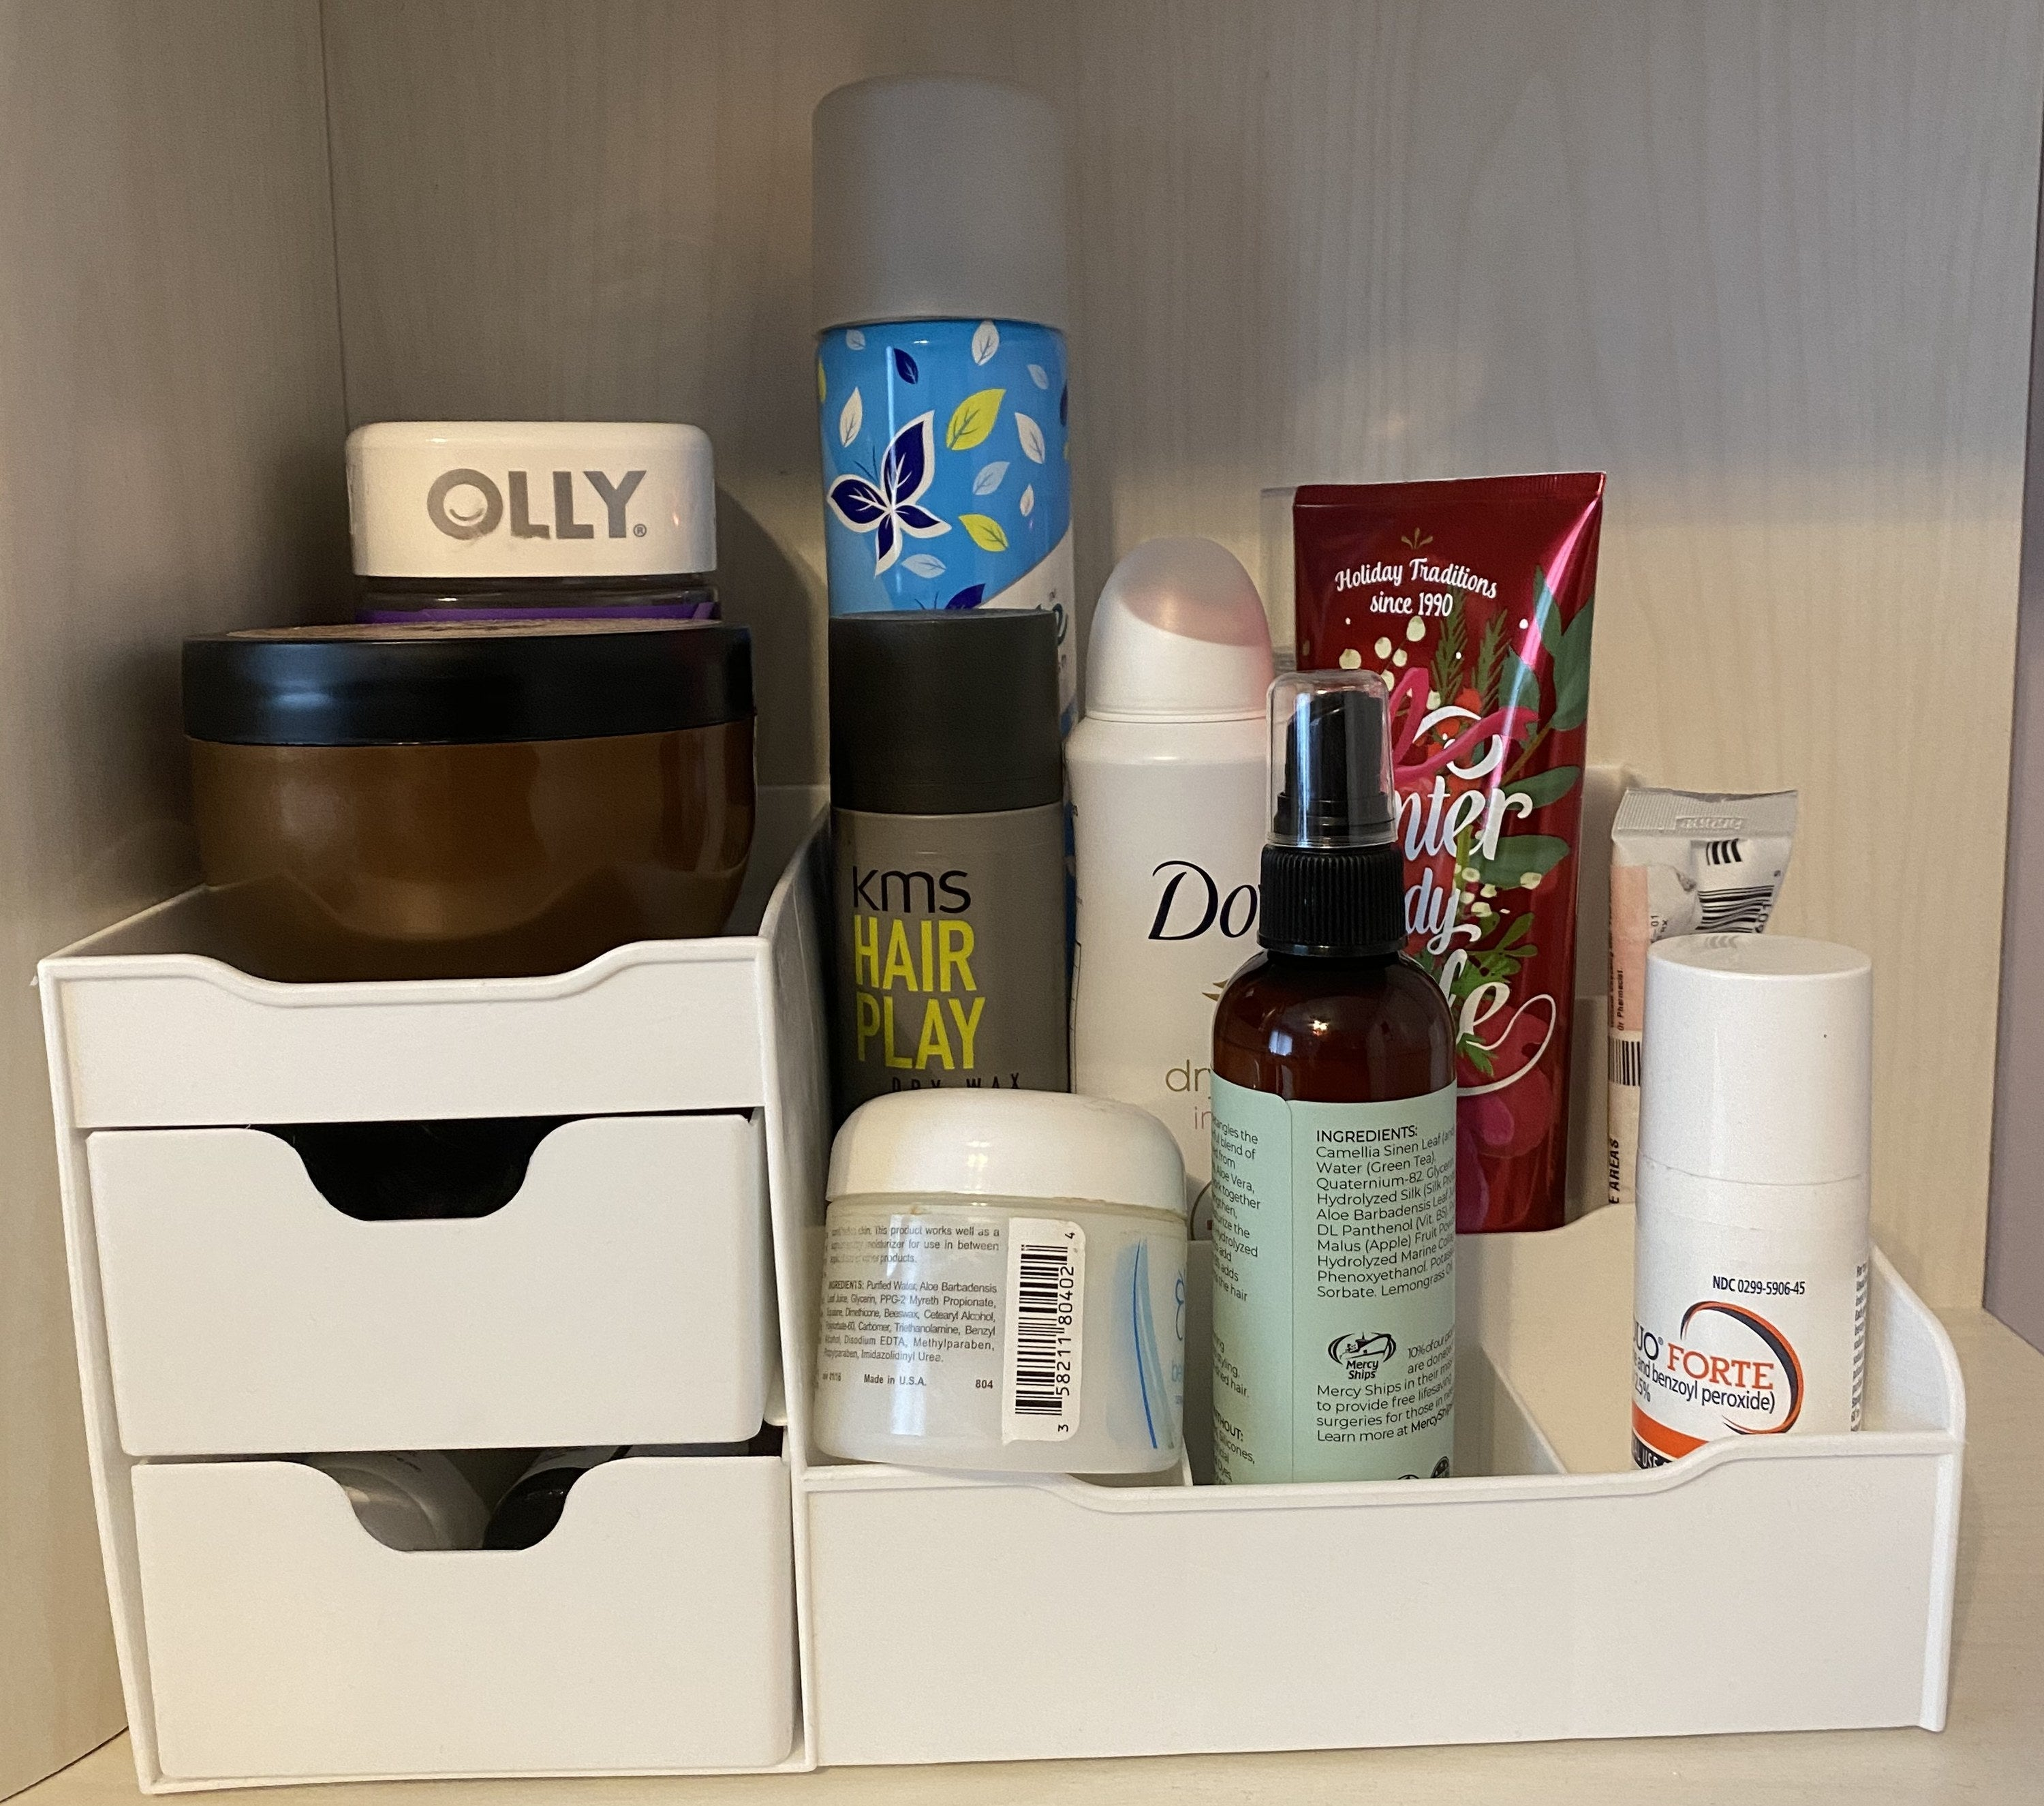 The vanity organizer with skincare and hair products on it